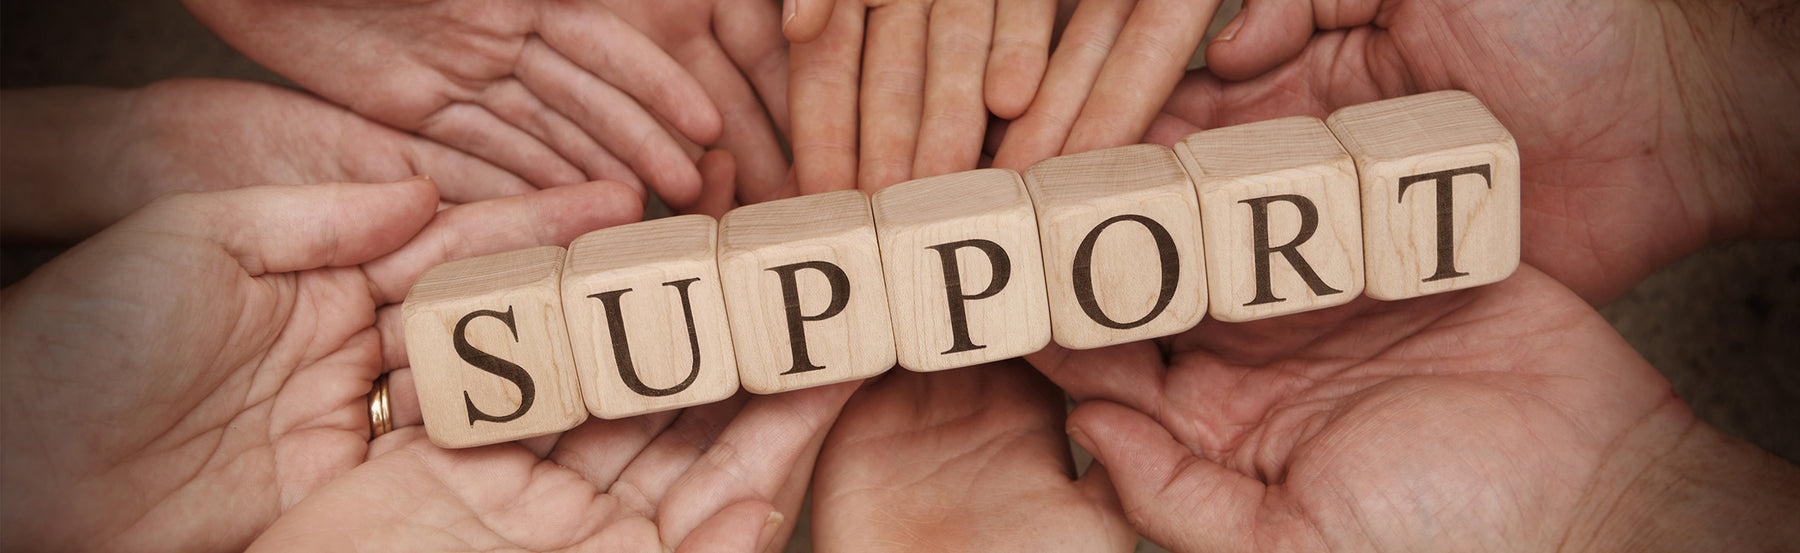 Using Support Groups to Cope with Pain